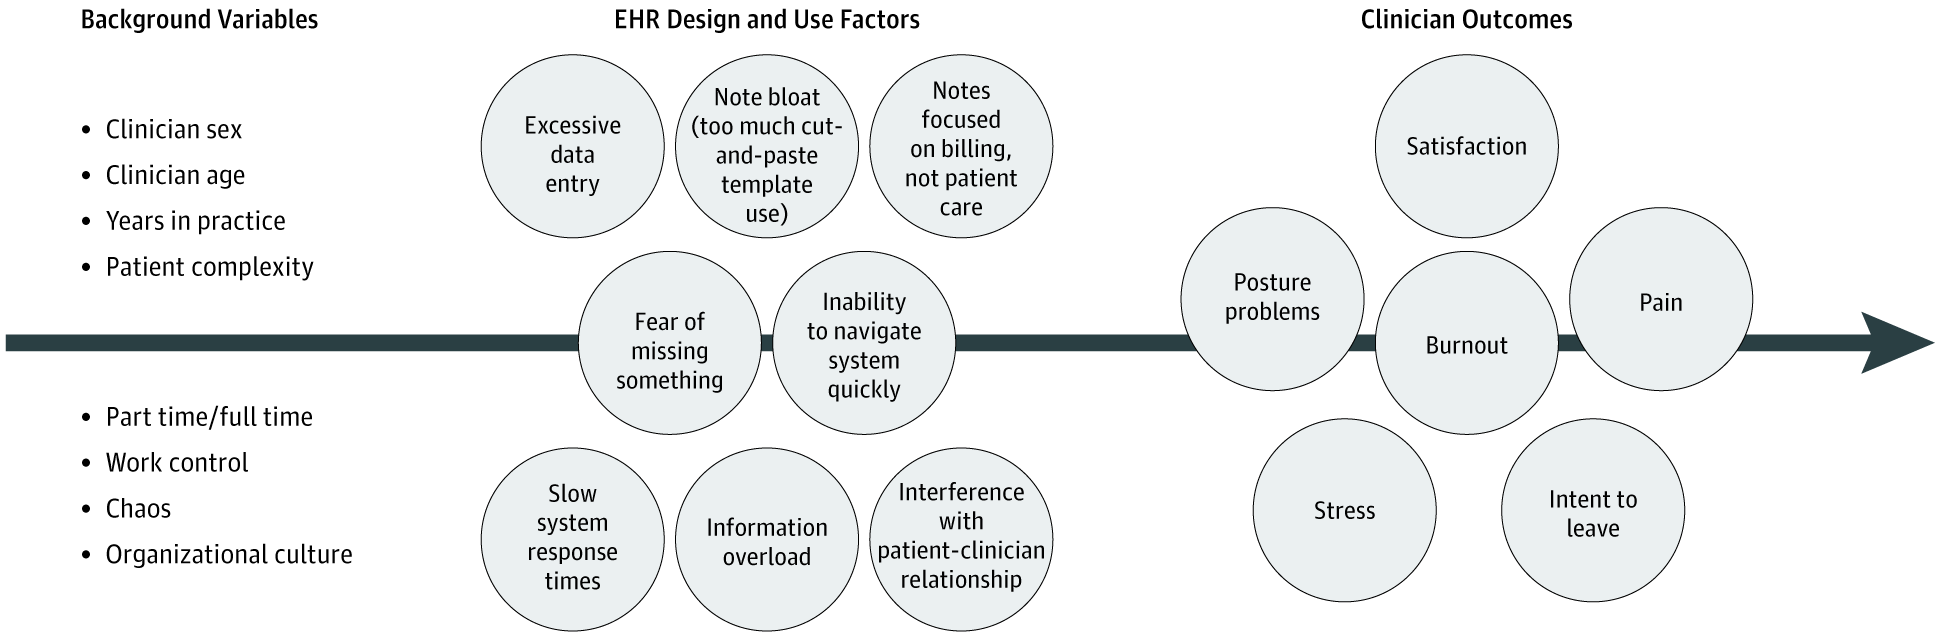 factors associated with adverse clinician outcomes